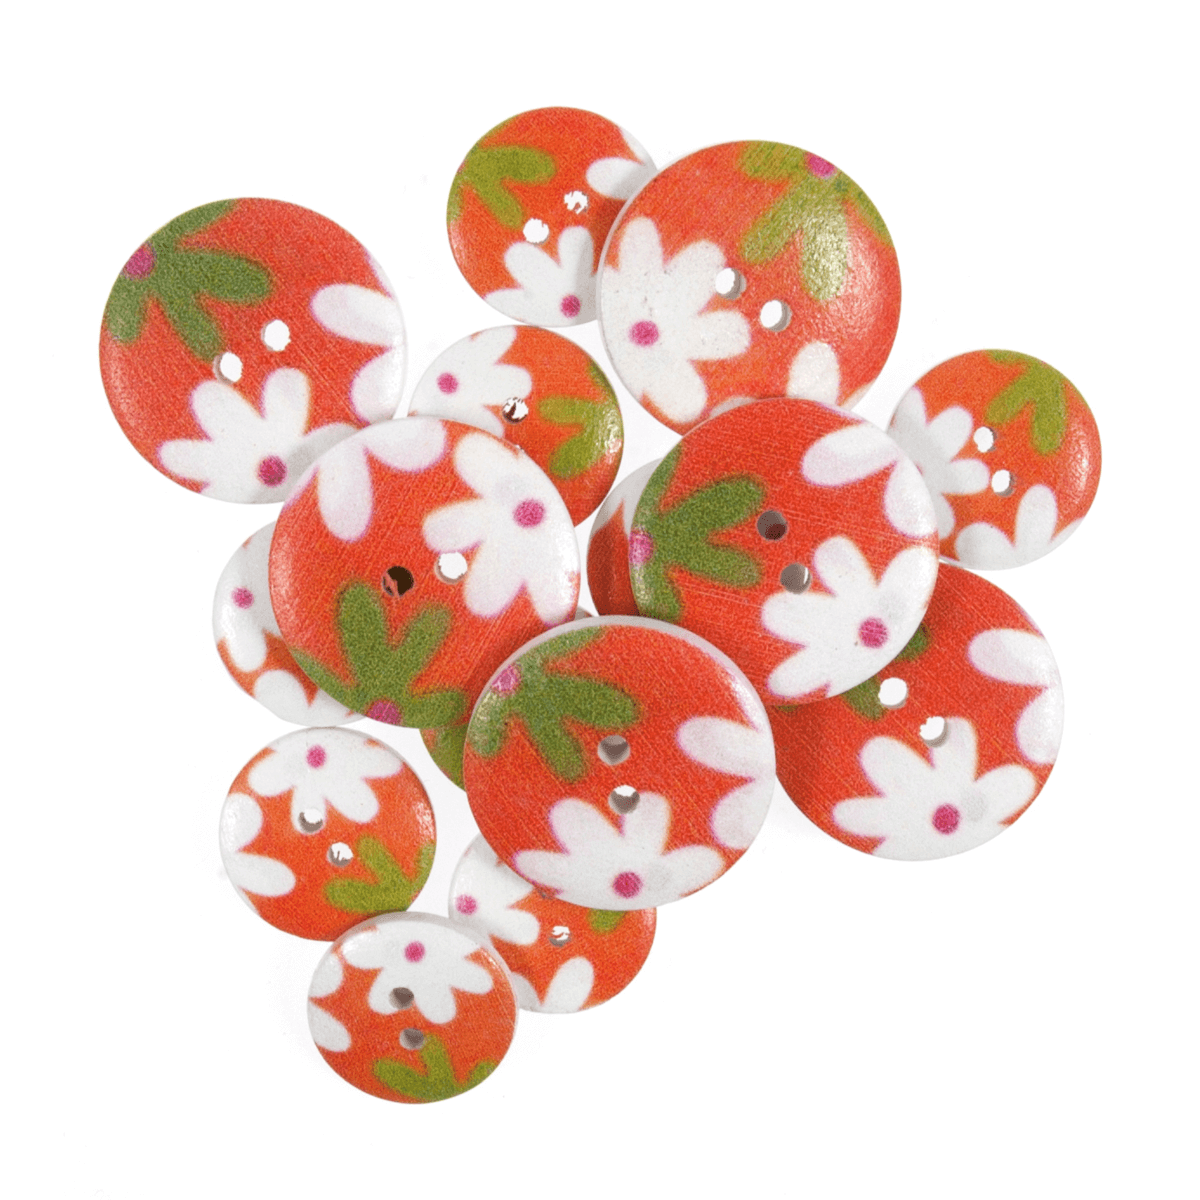 15 x Assorted Daisy Delight Pink Wooden Craft Buttons 18mm - 25mm